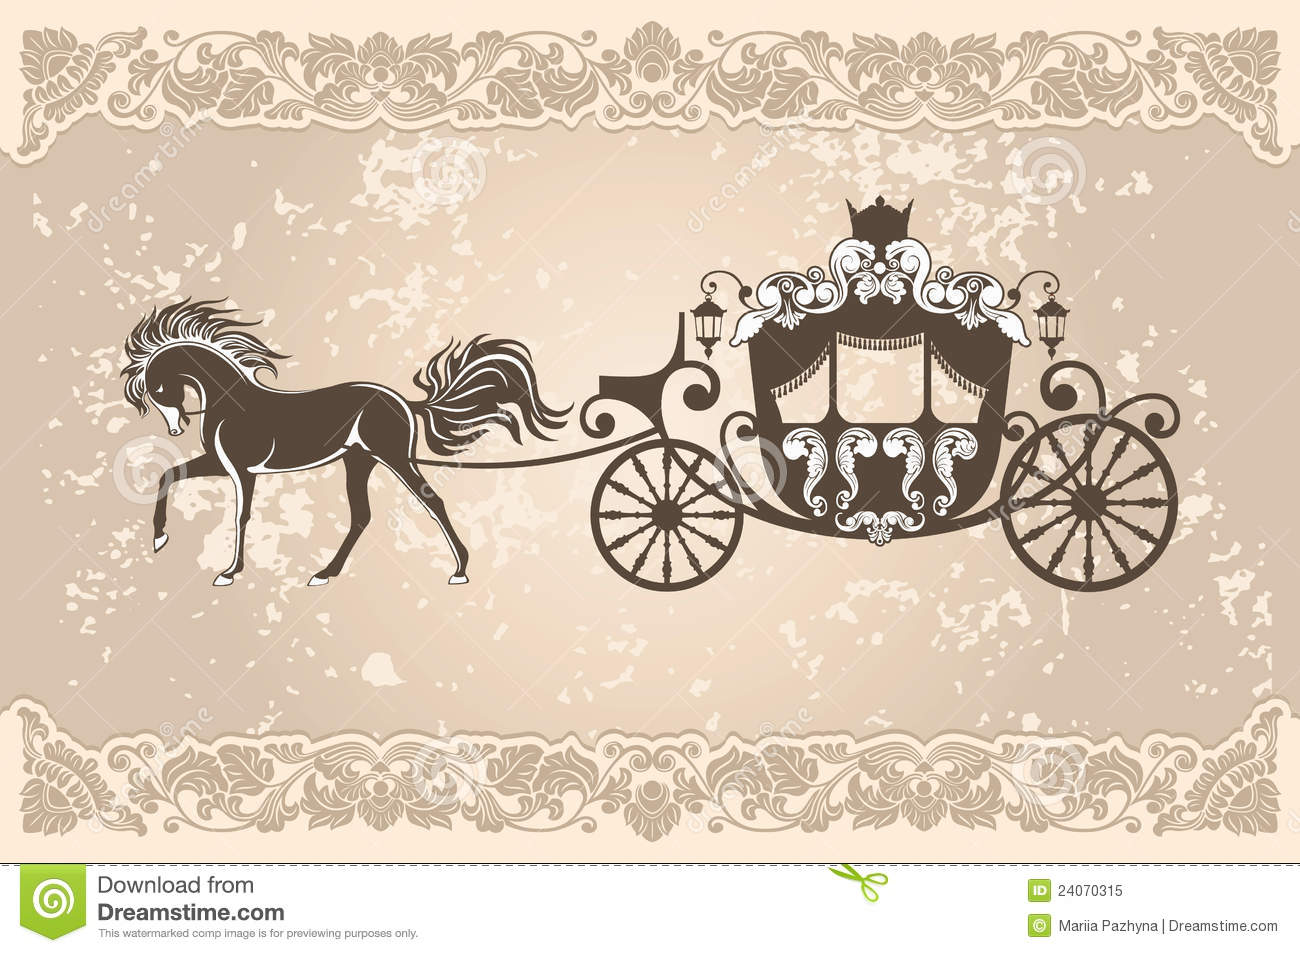 Royal carriage stock vector. Image of design, luxury ...